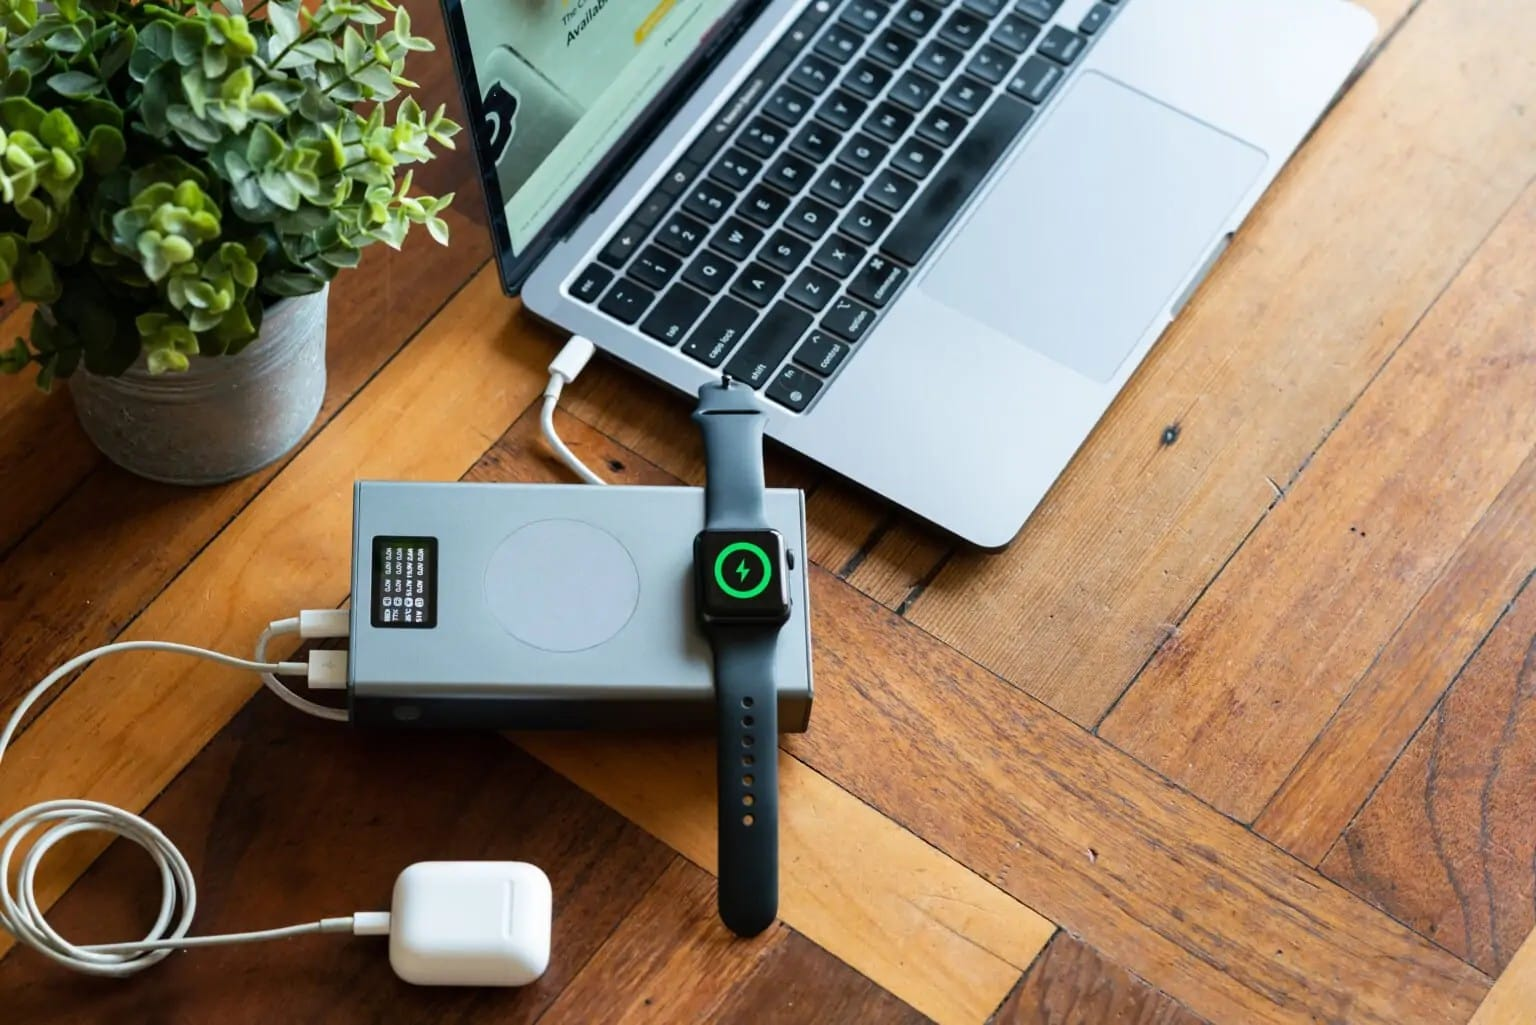 The MagSafe-compatible Flash Pro Plus power bank can charge up to six Apple devices at once.